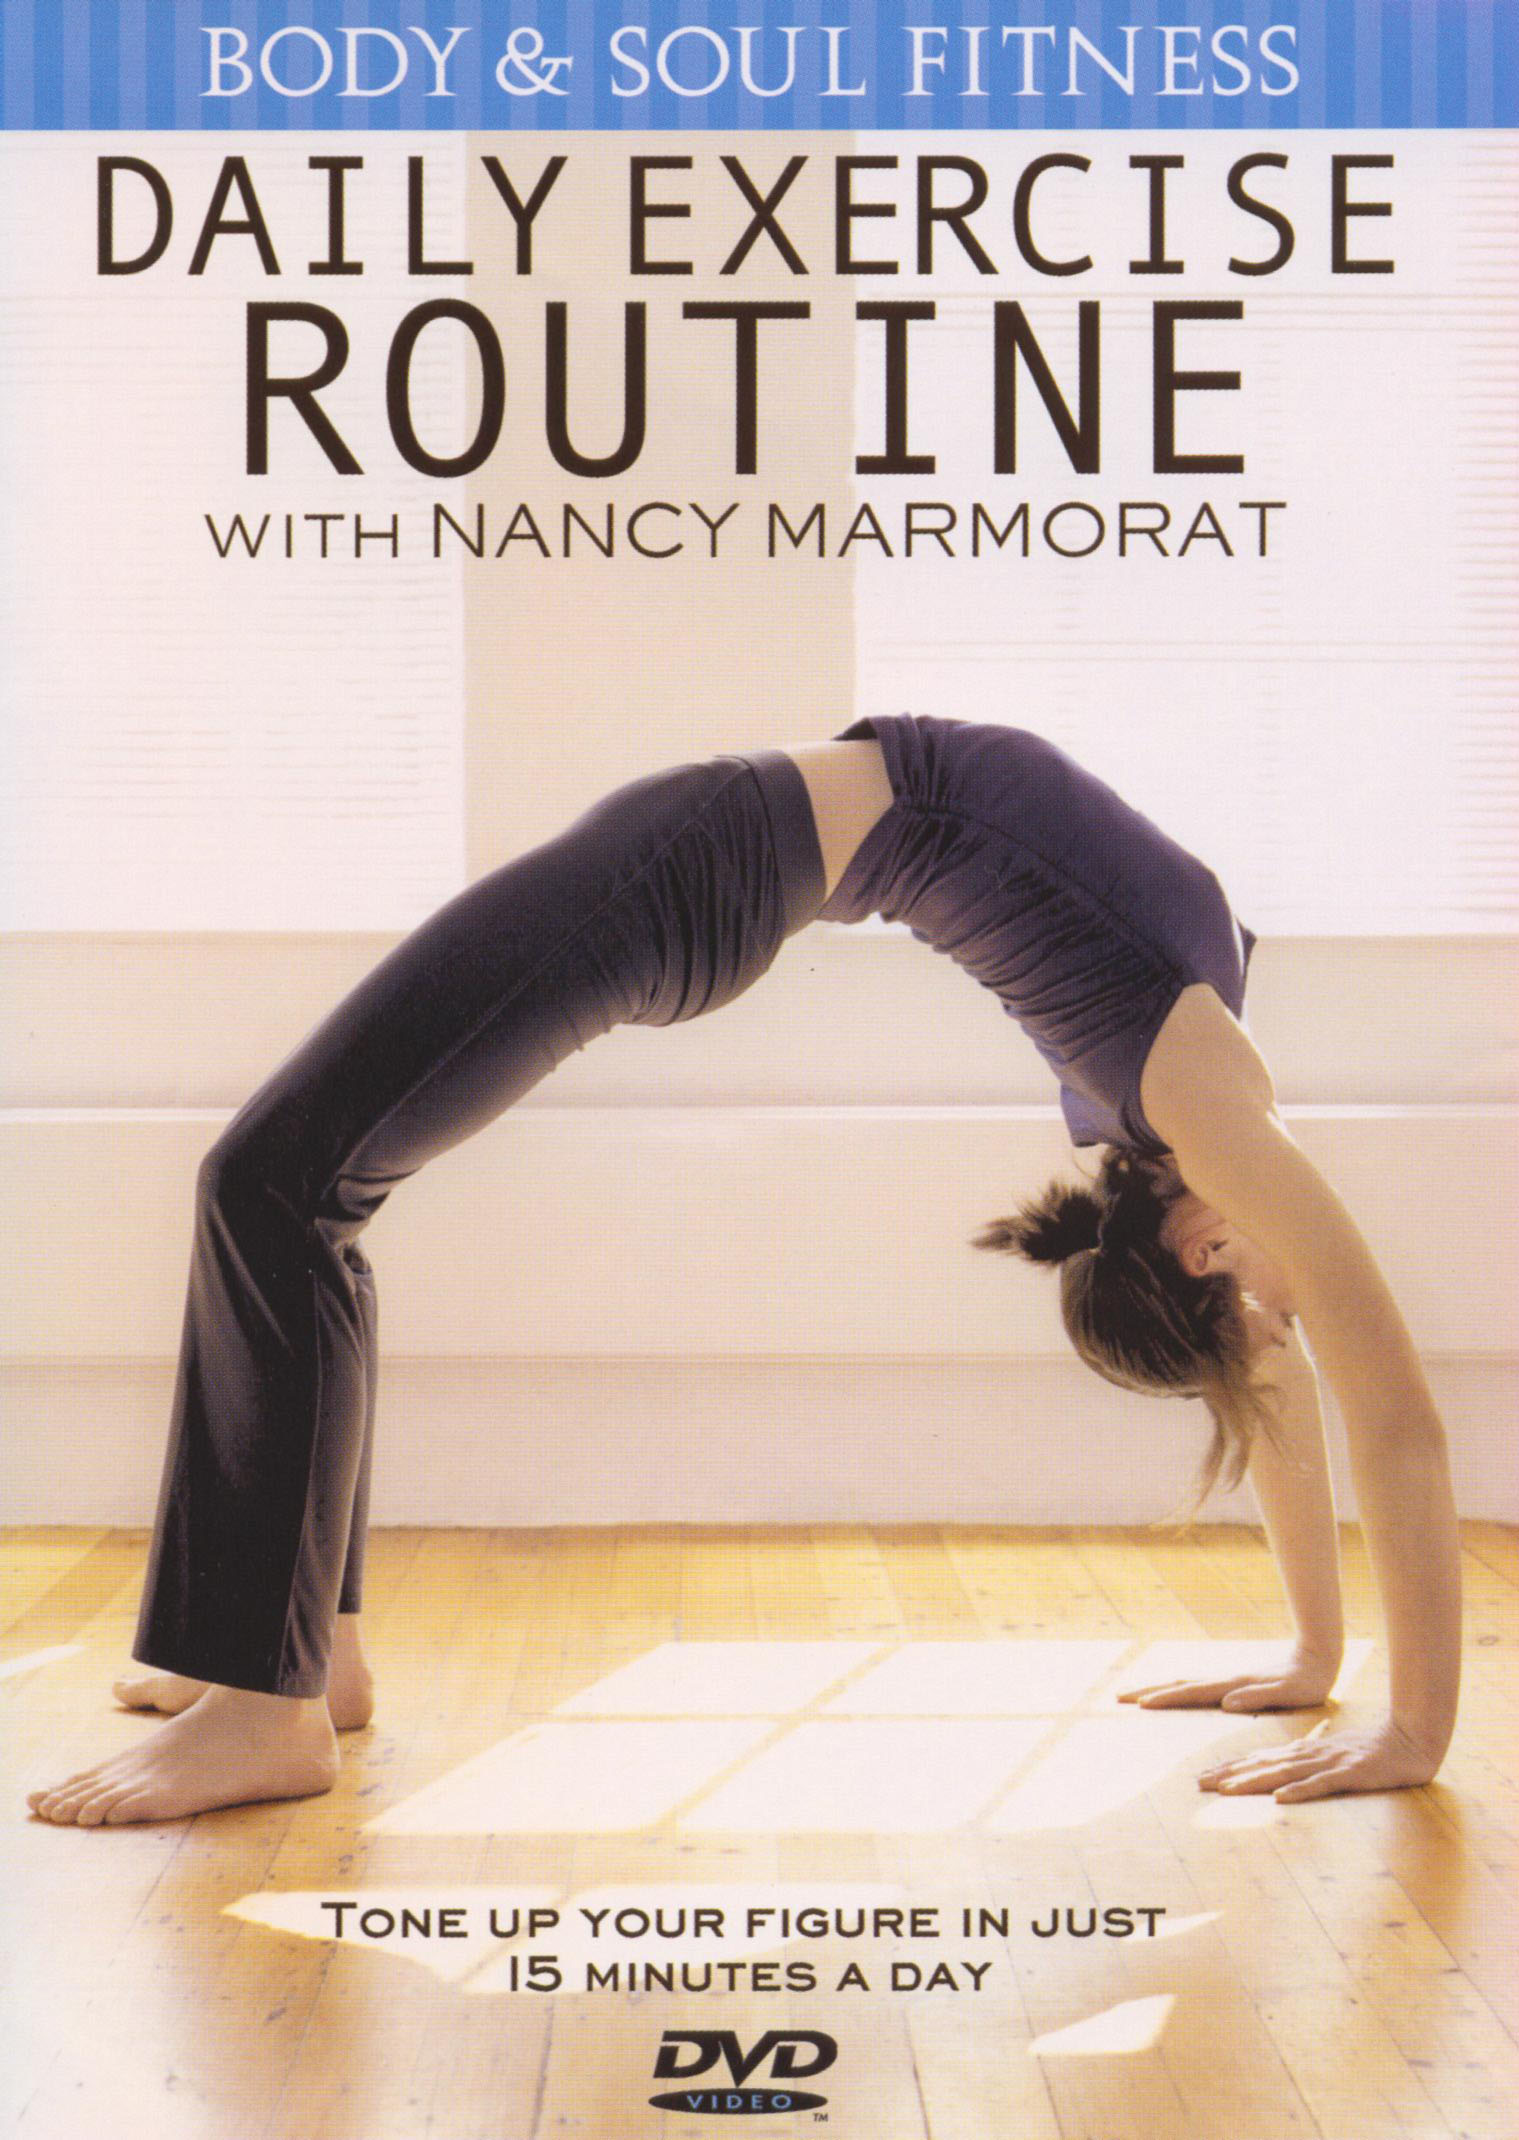 Nancy Marmorat: Daily Exercise Routine